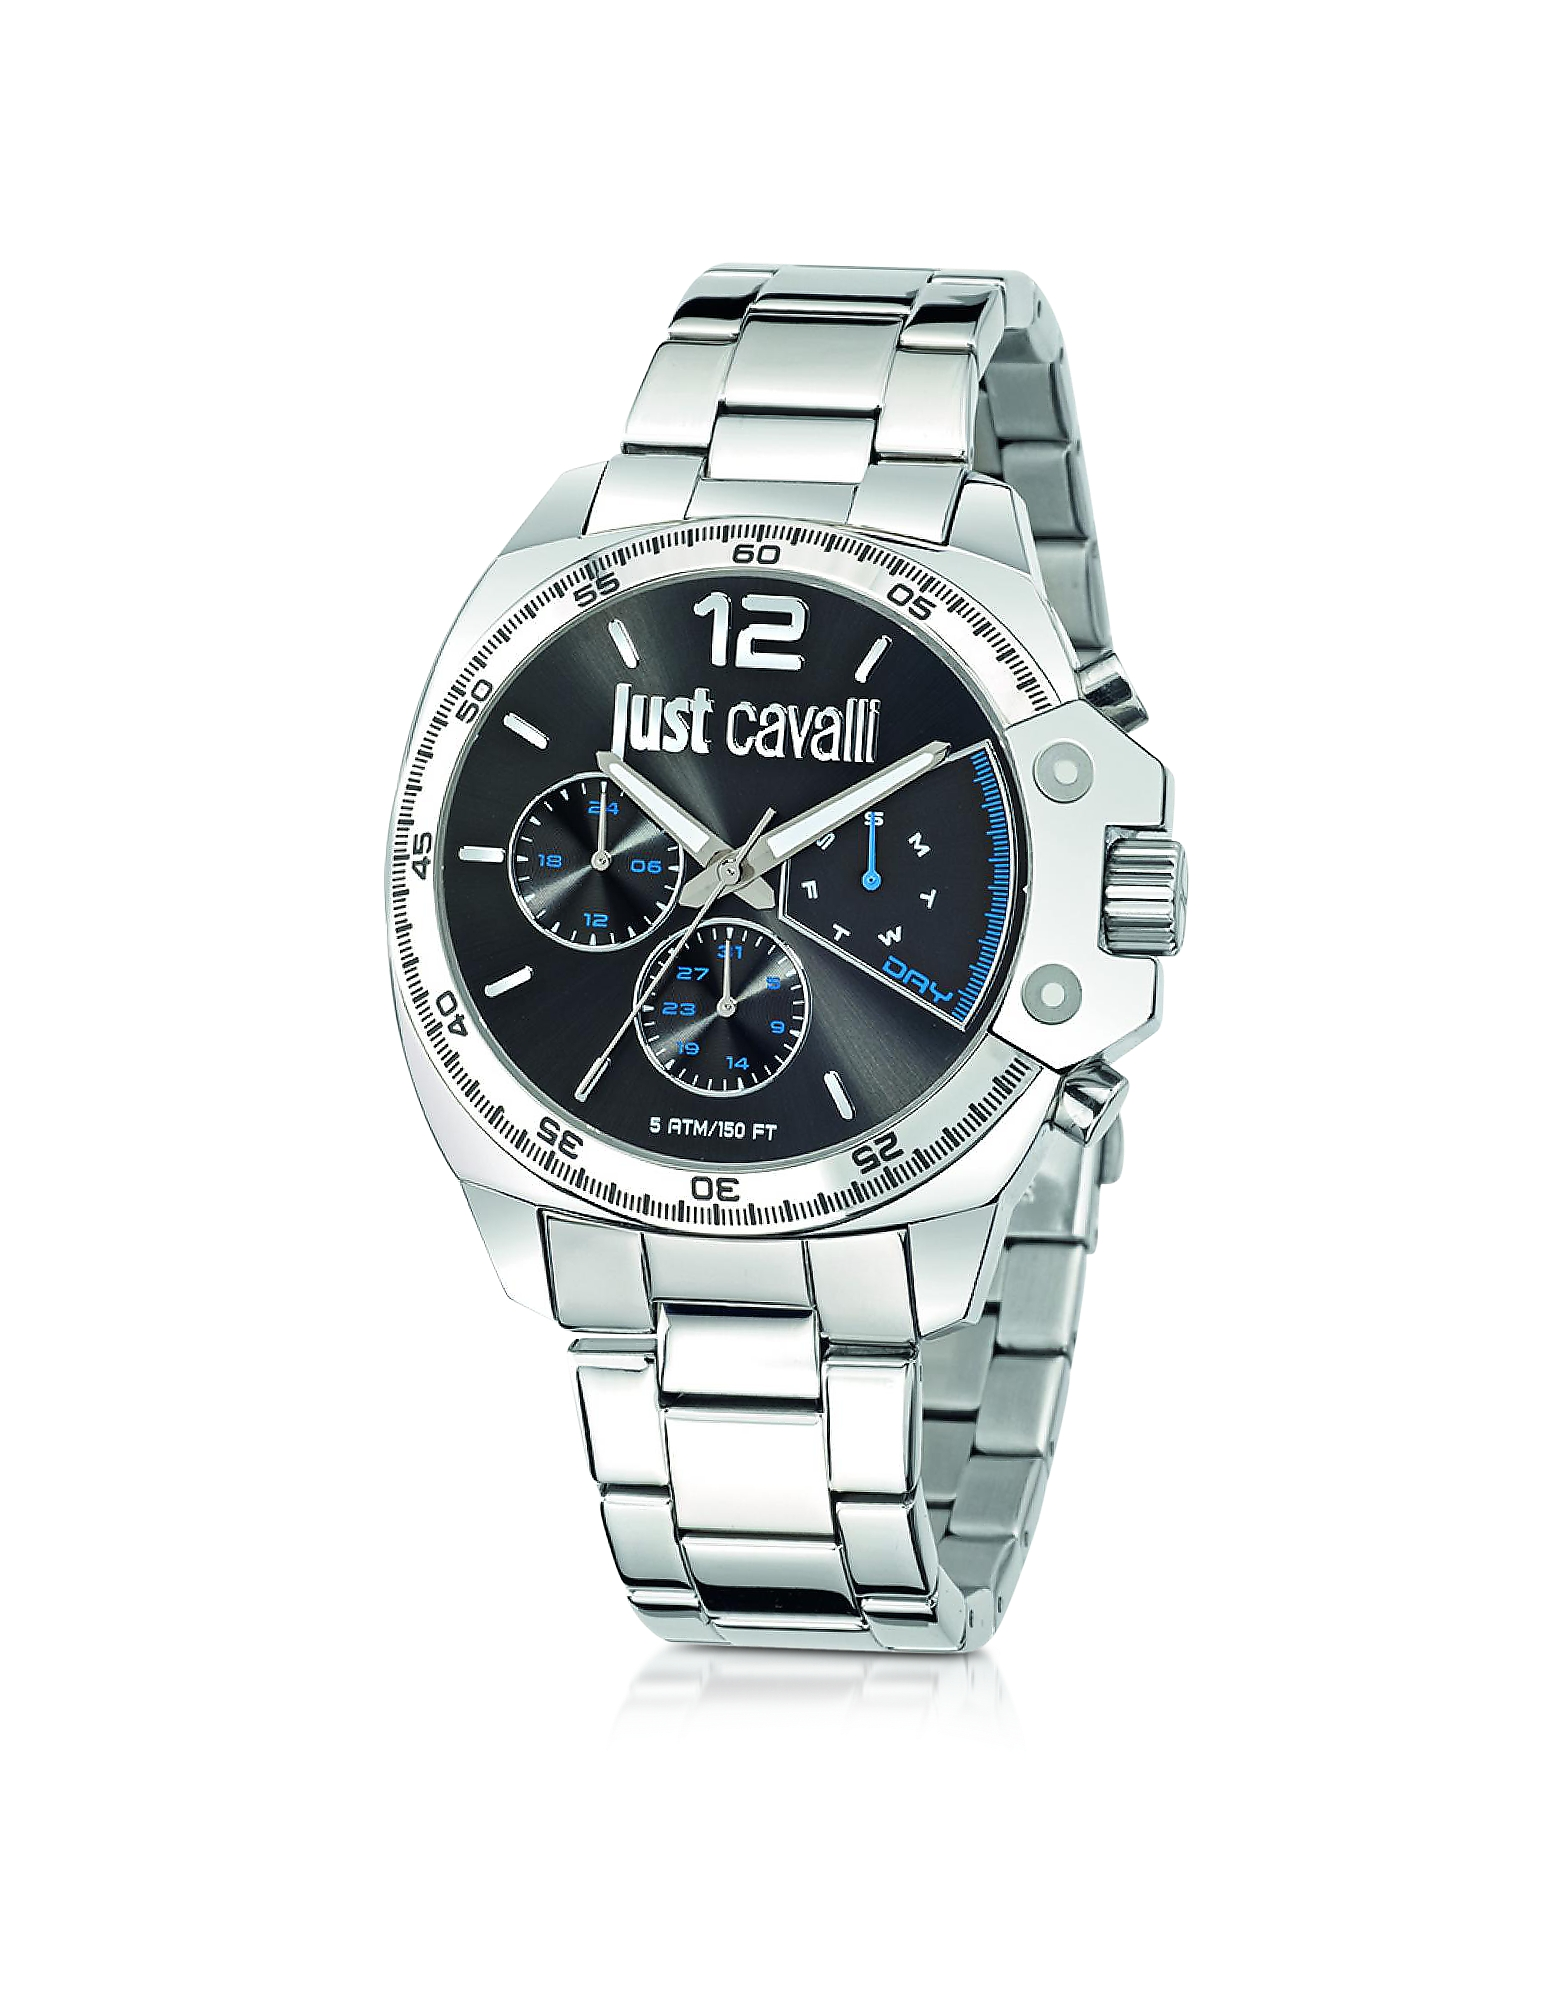 Just Cavalli Men's Watches, Just Escape Silver Tone Stainless Steel Men's Watch